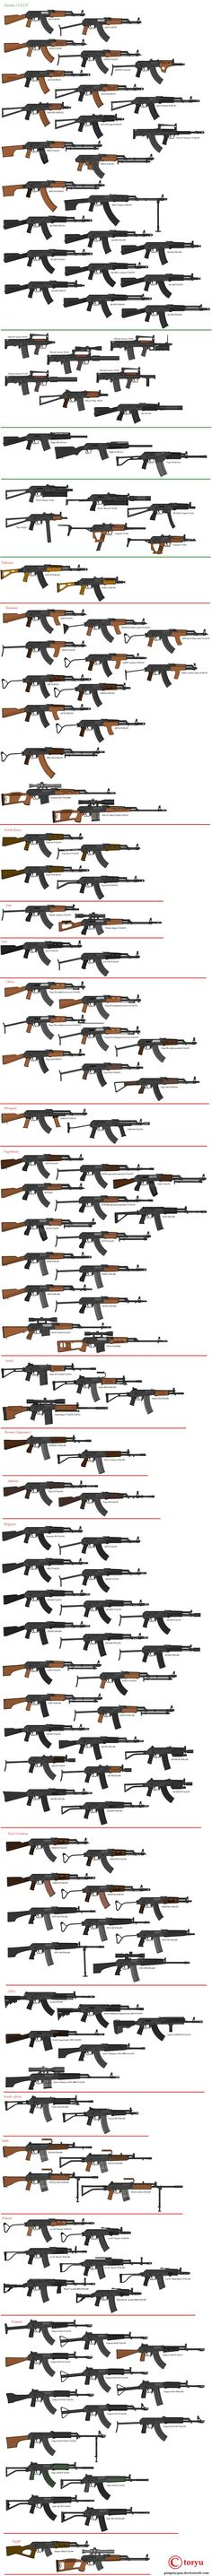 almost all AK rifle versions by Toryu SK; probably the best work AK rifle coletion ever!